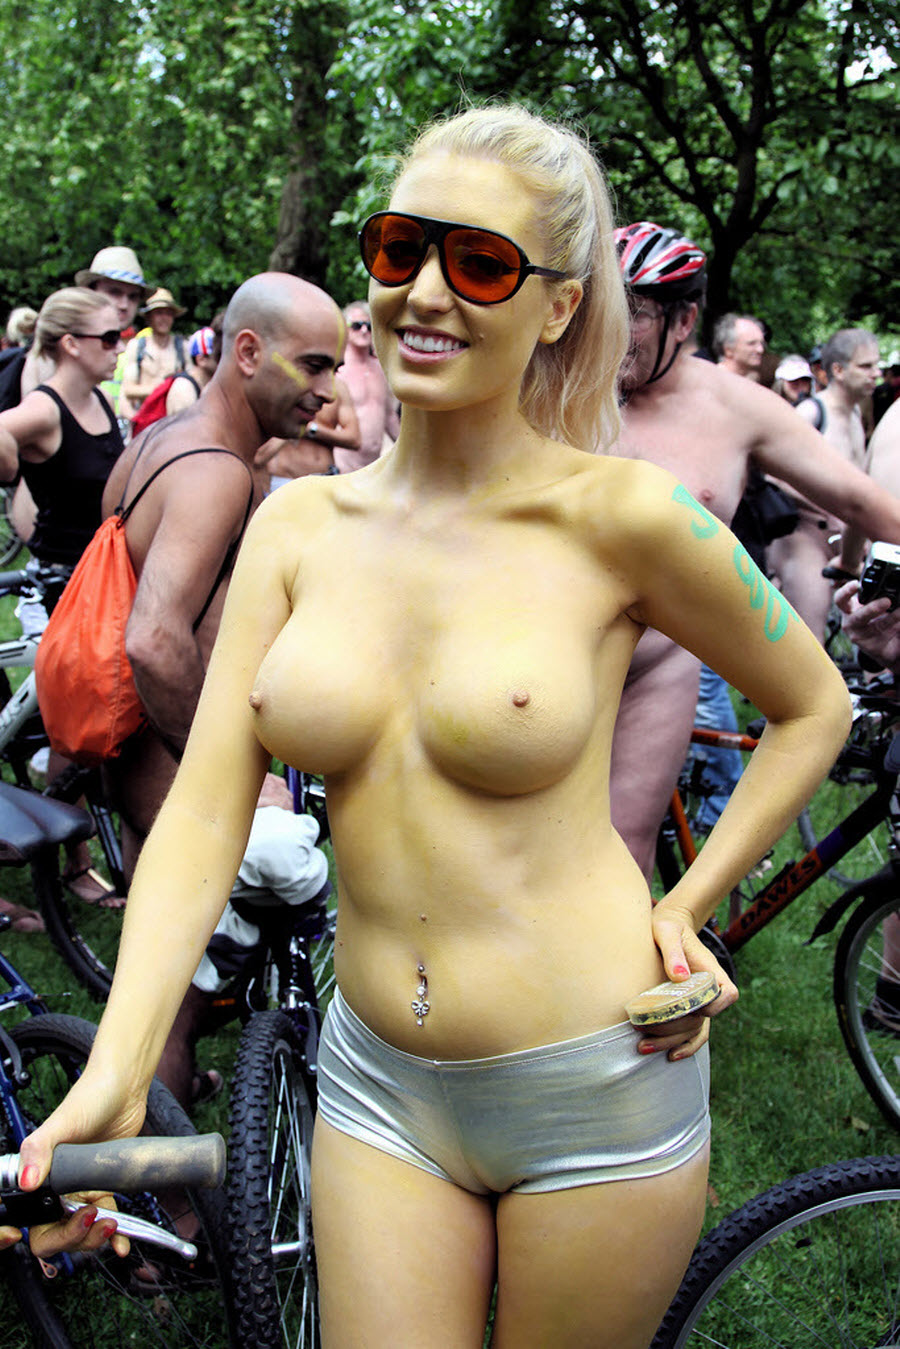 Very Cute Blonde Girl Painted her Nude Body for Public Show